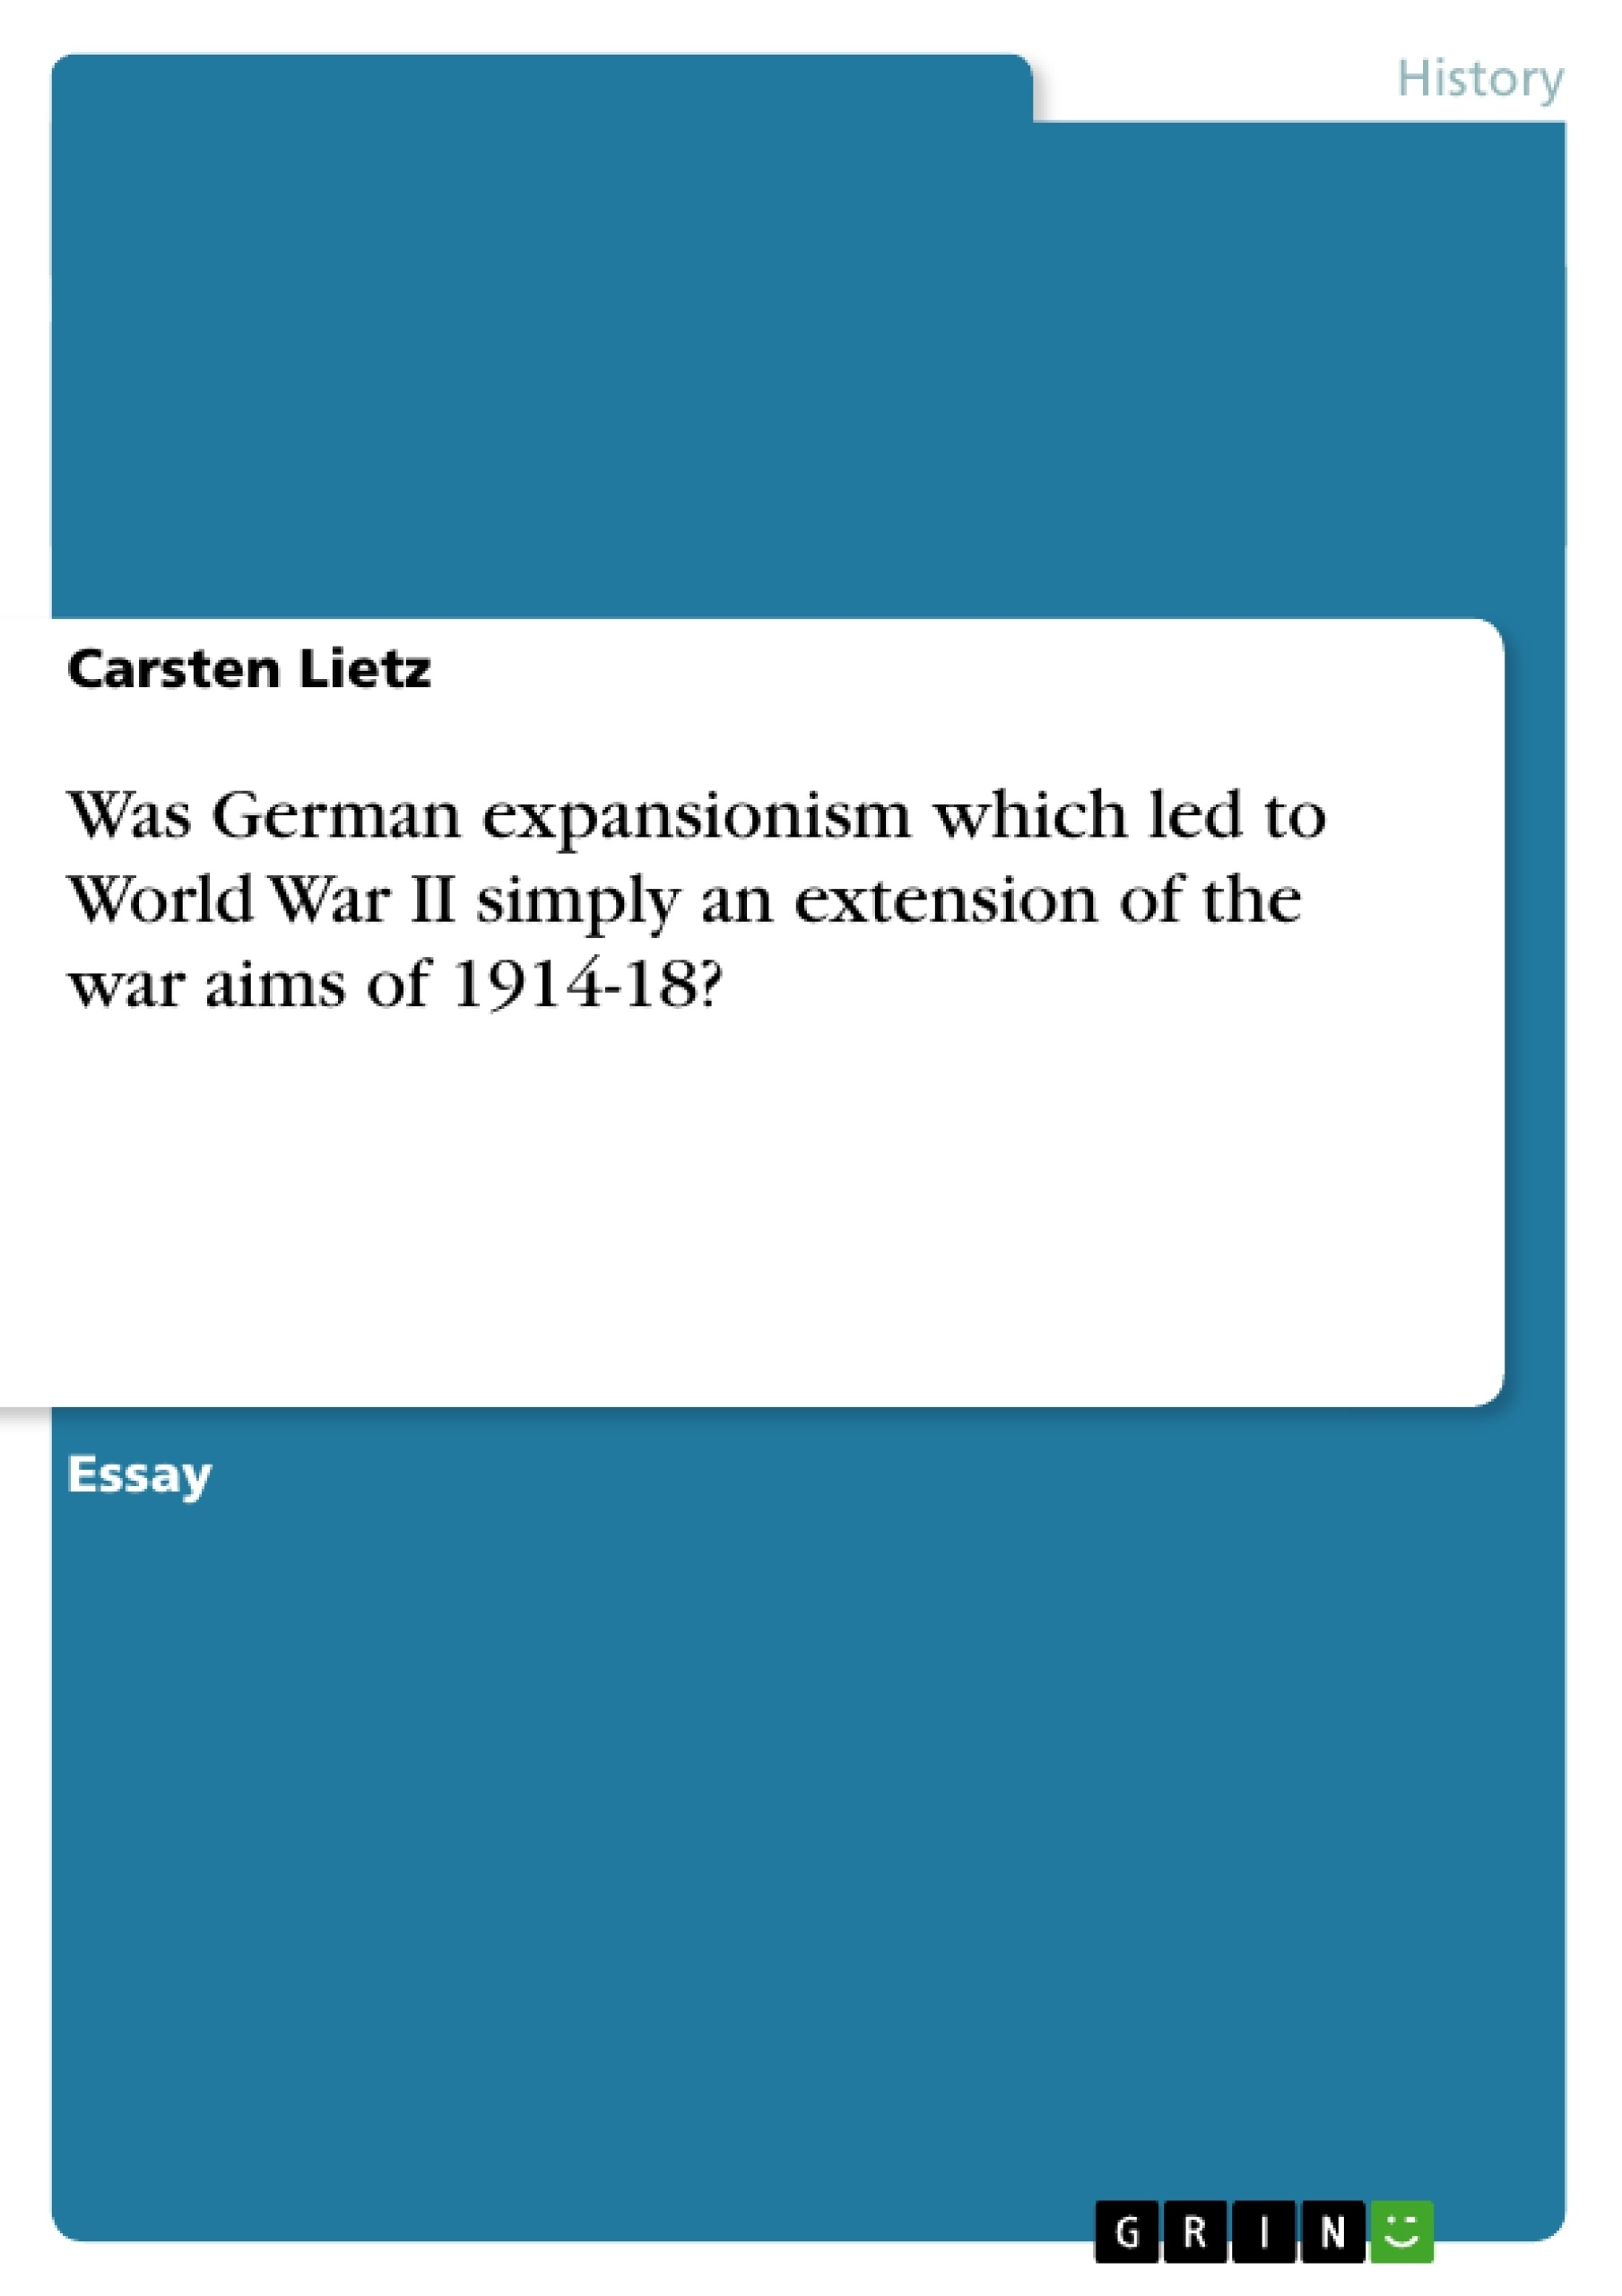 Title: Was German expansionism which led to World War II simply an extension of the war aims of 1914-18?